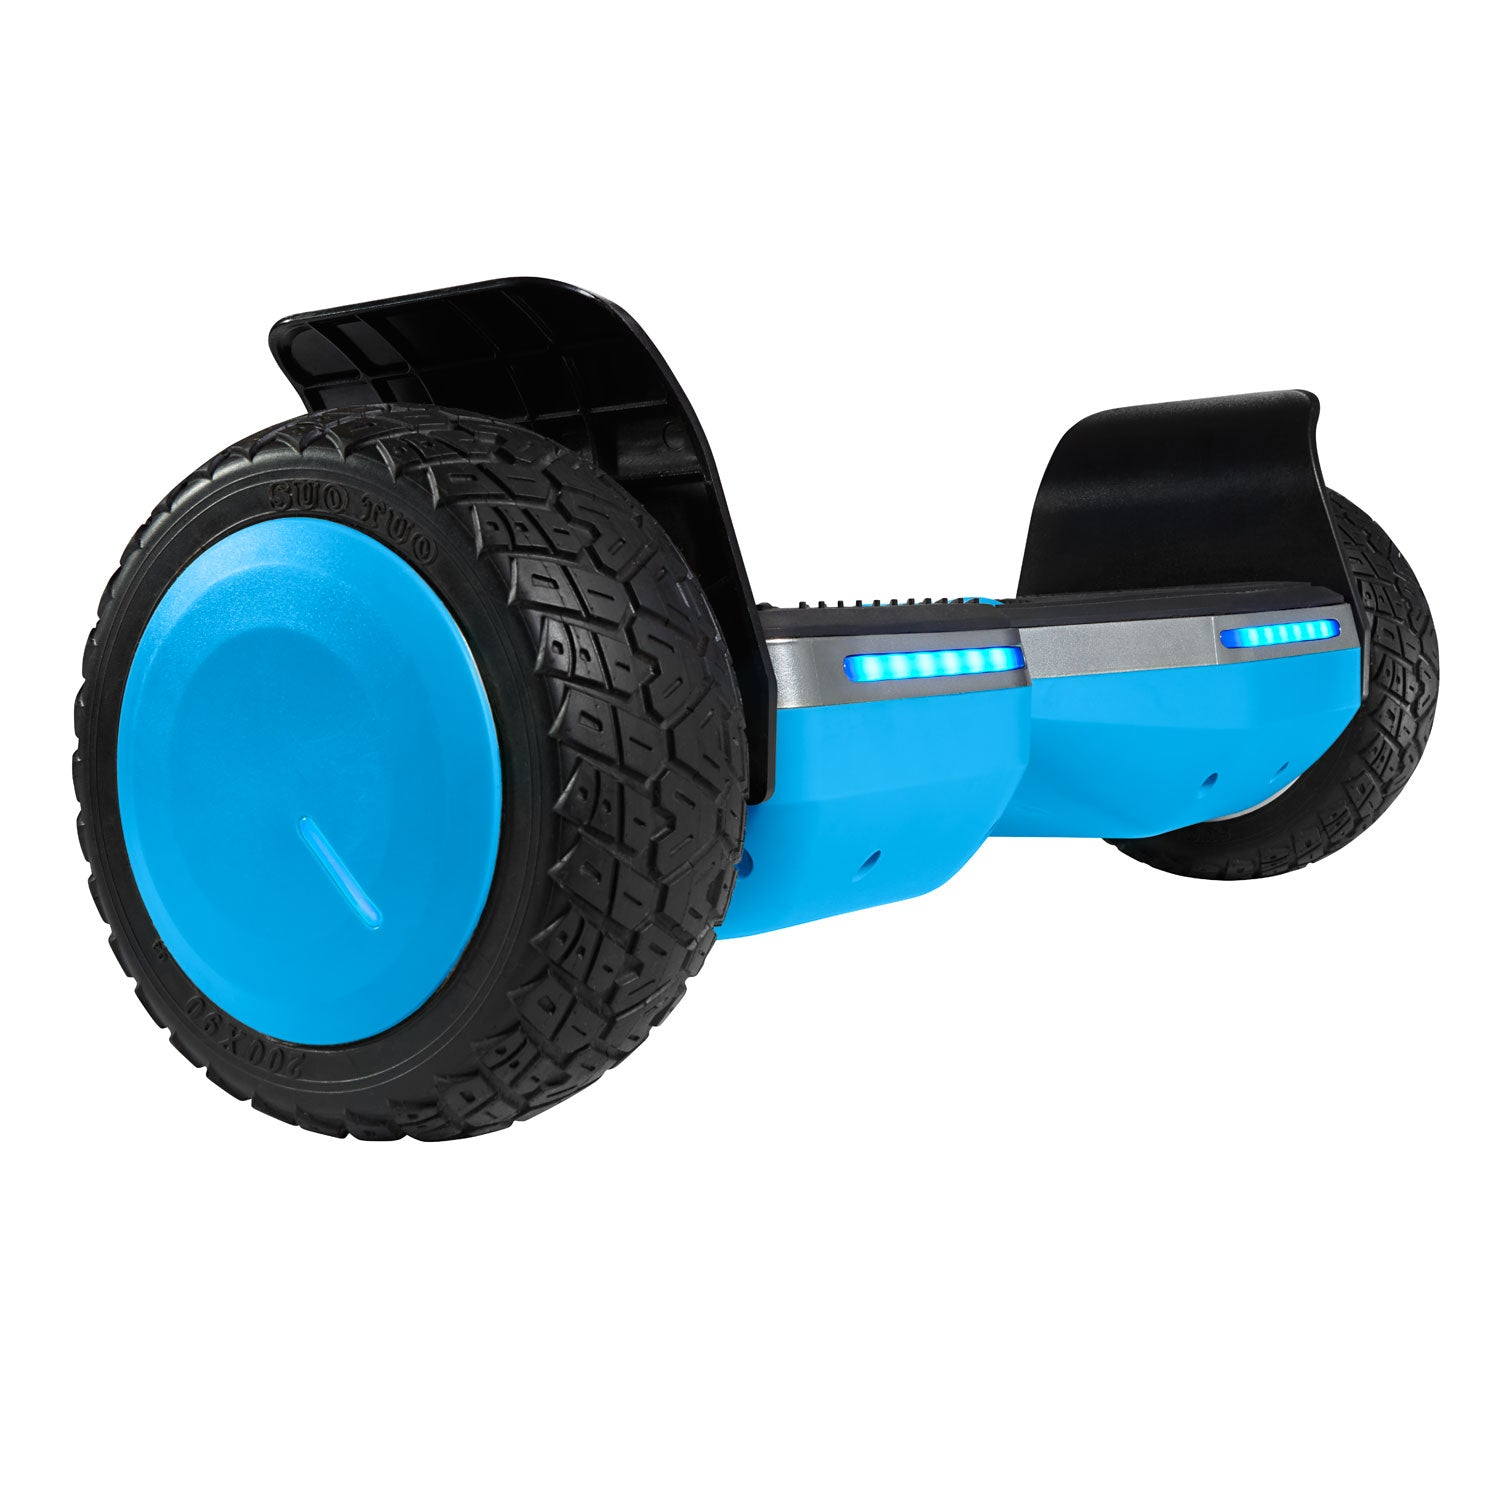 Blue Main Image SRX Pro all terrain hoverboard with bluetooth